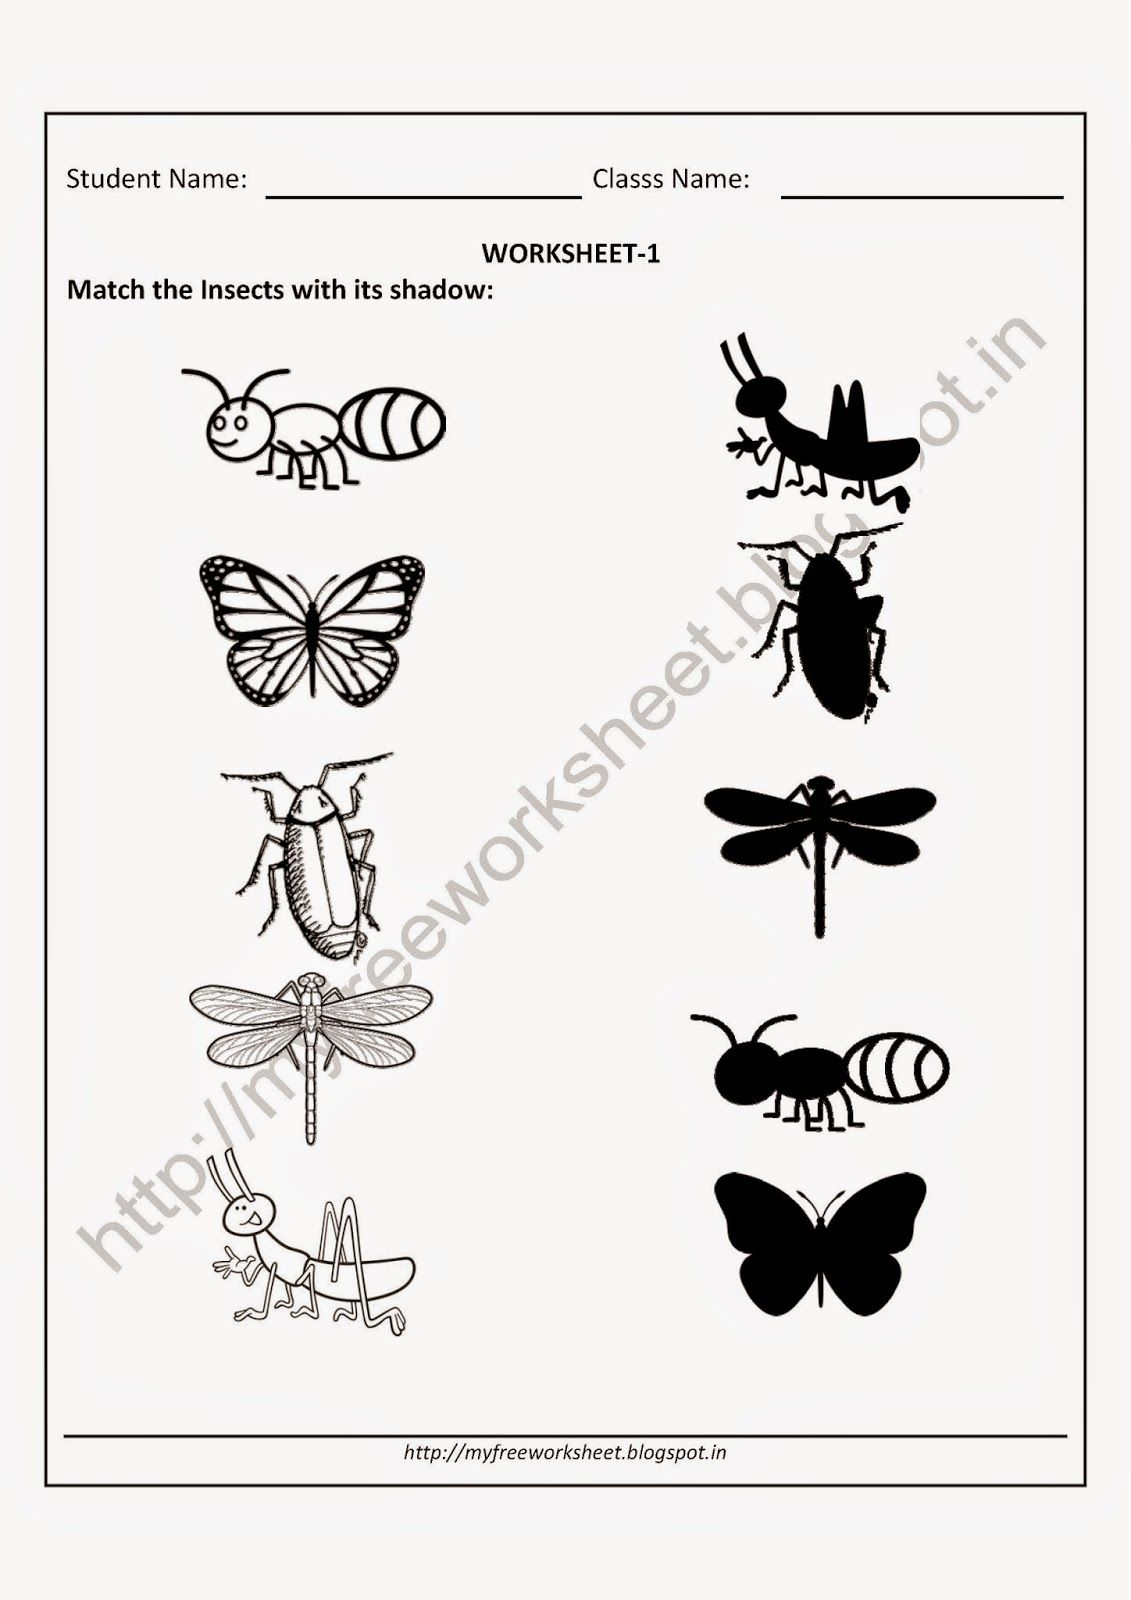 Worksheets Worksheet For Nursery free printable worksheets for nursery kindergarten senior kg practice sheets download free